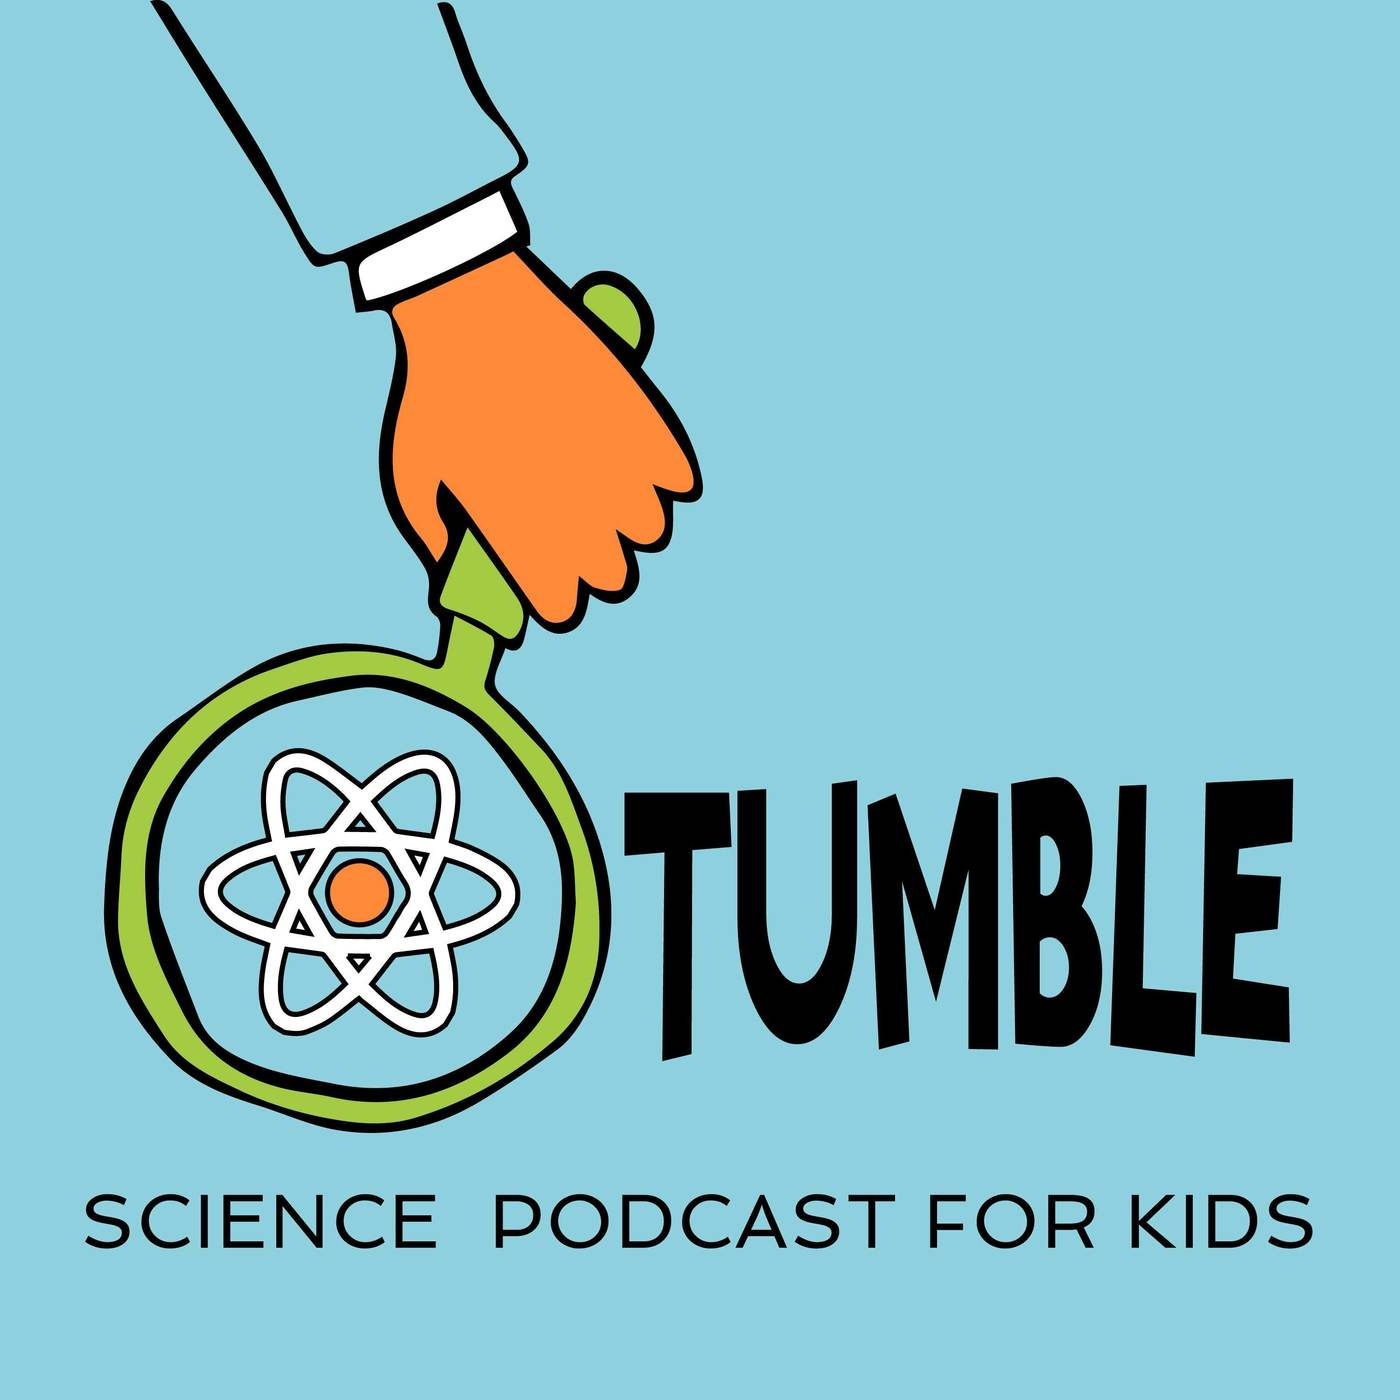 Tumble: Science Podcast for Kids